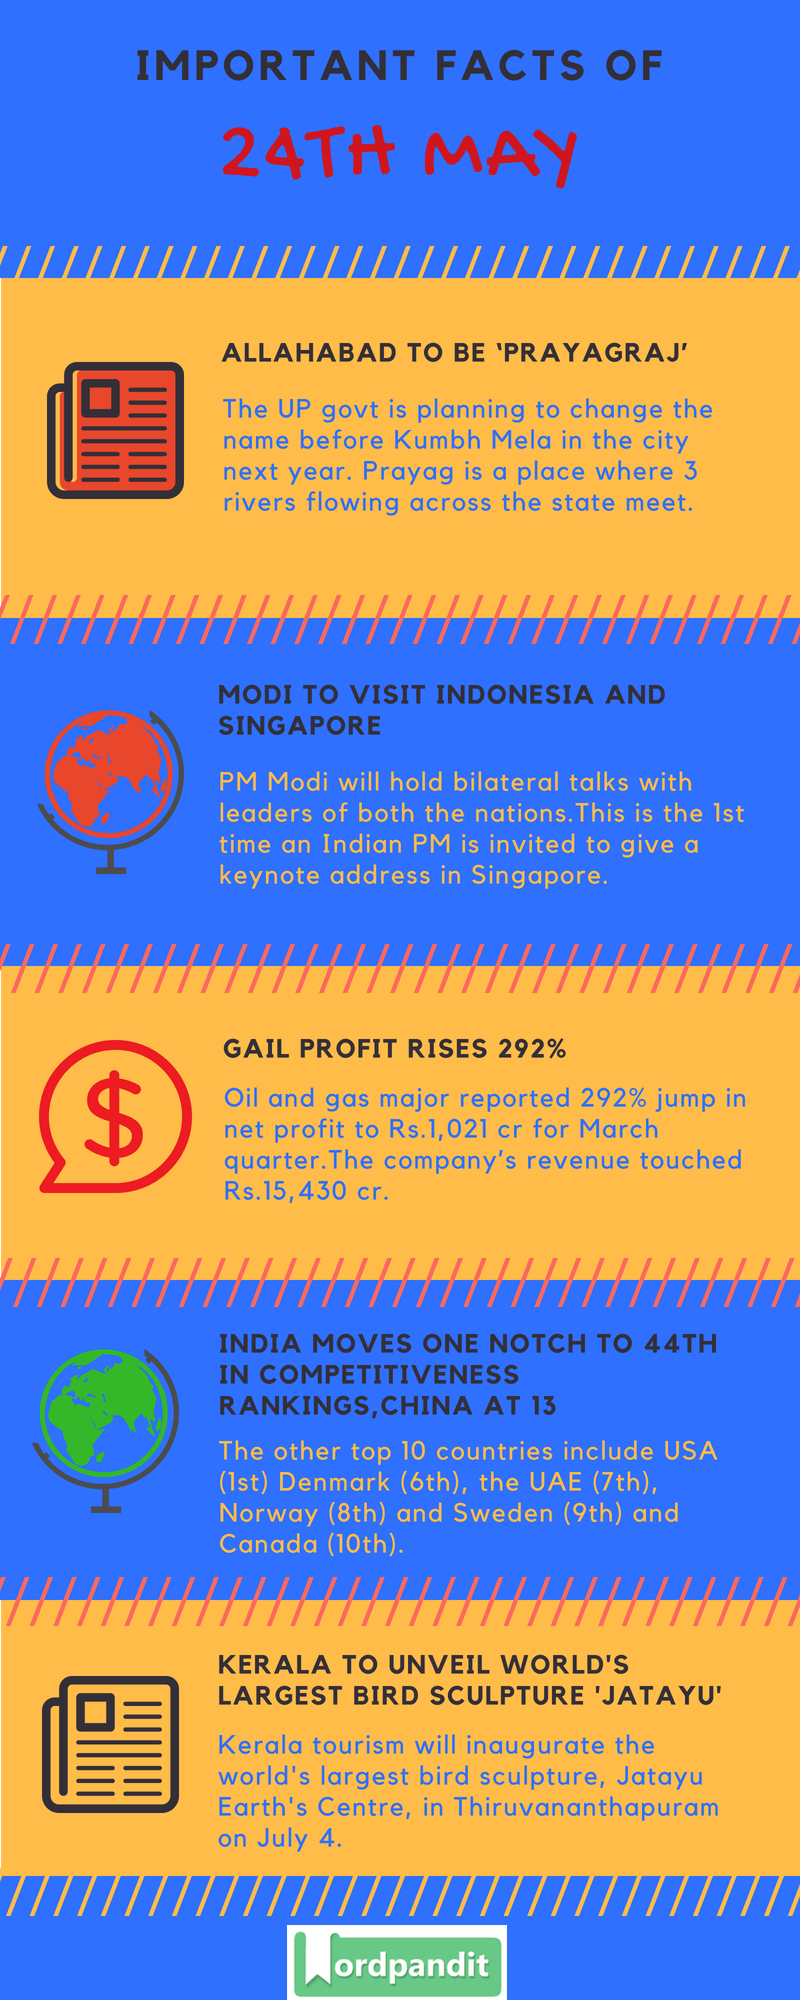 Daily Current Affairs 24 May 2018 Current Affairs Quiz May 24 2018 Current Affairs Infographic